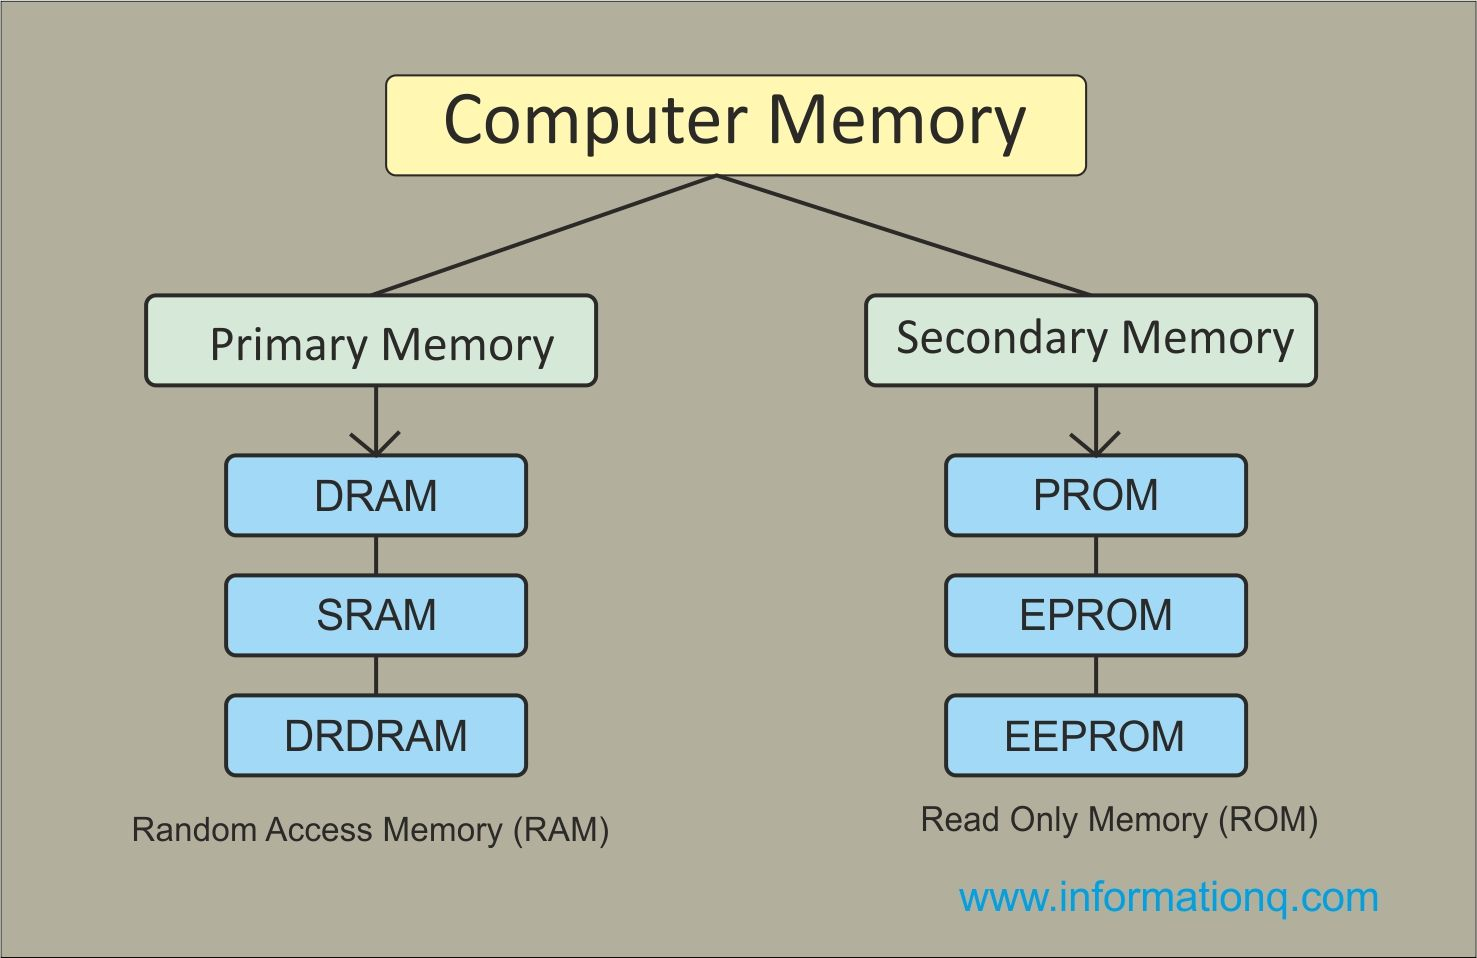 Memory Is Major Part Of Computers That Categories Into